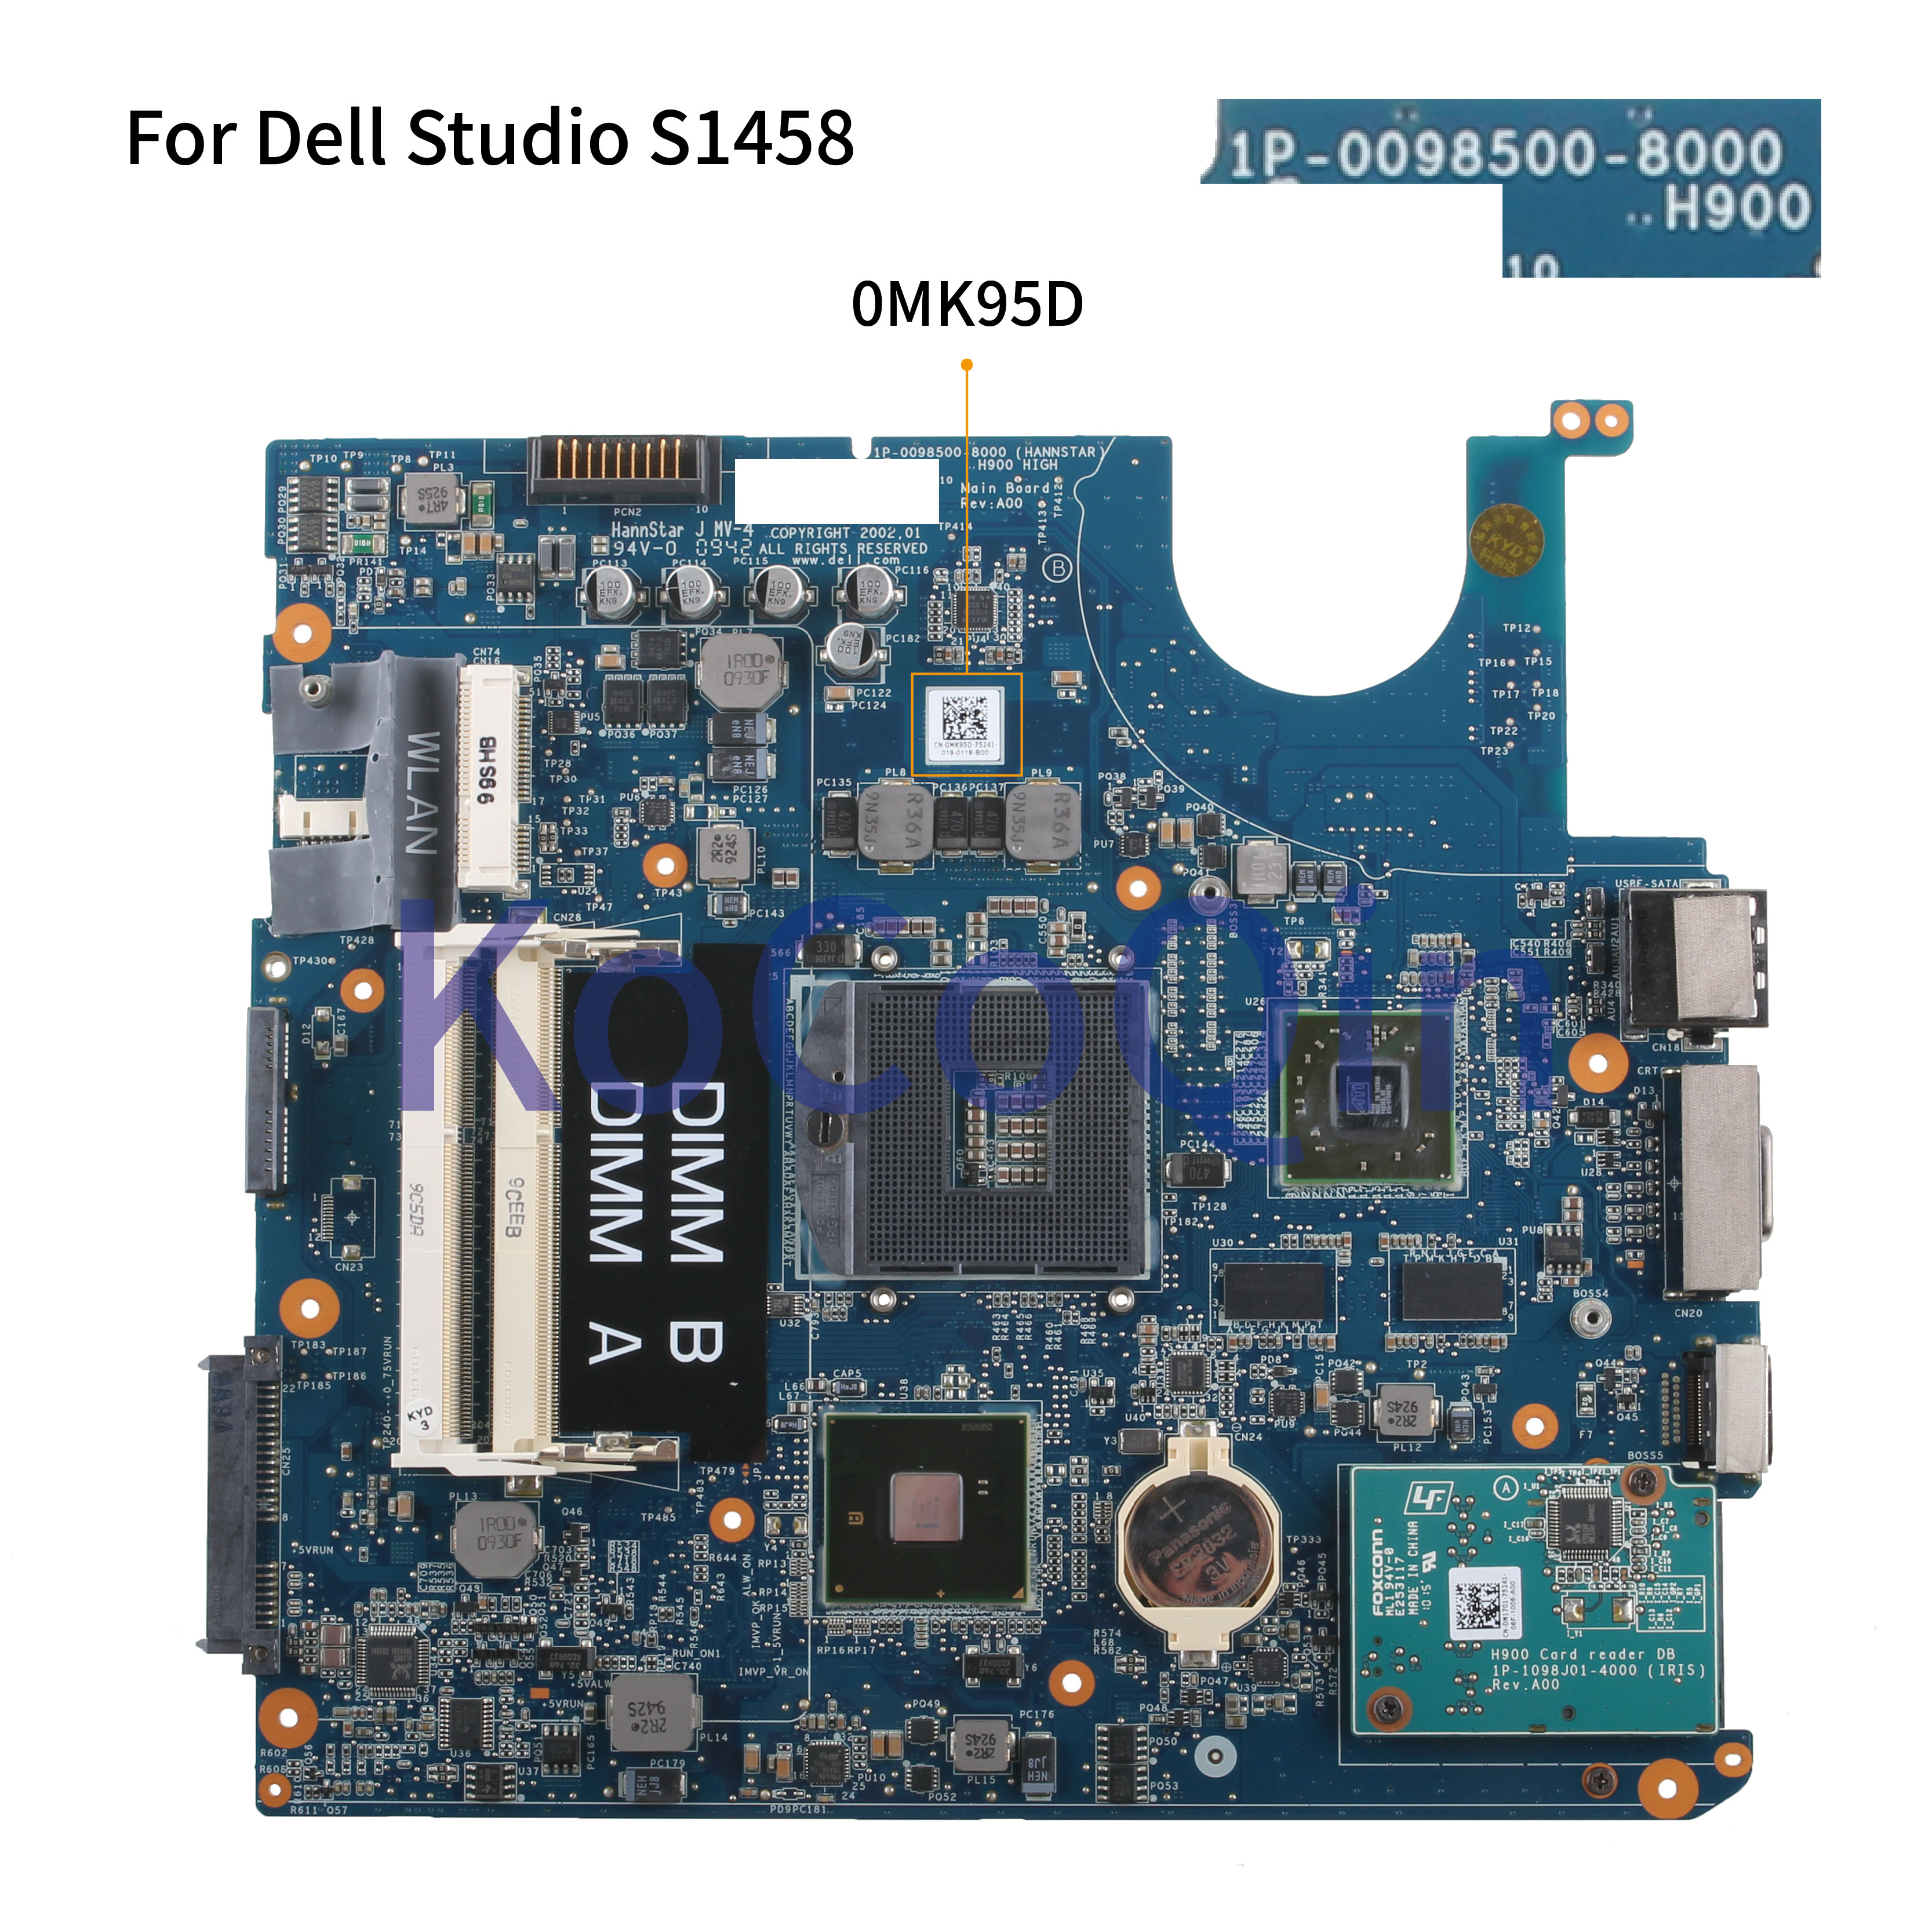 KoCoQin Laptop Motherboard For Dell Studio 1458 1457 S1458 S1457 HD4500 512MB Mainboard CN-0MK95D 0MK95D 1P-0098J01-8000